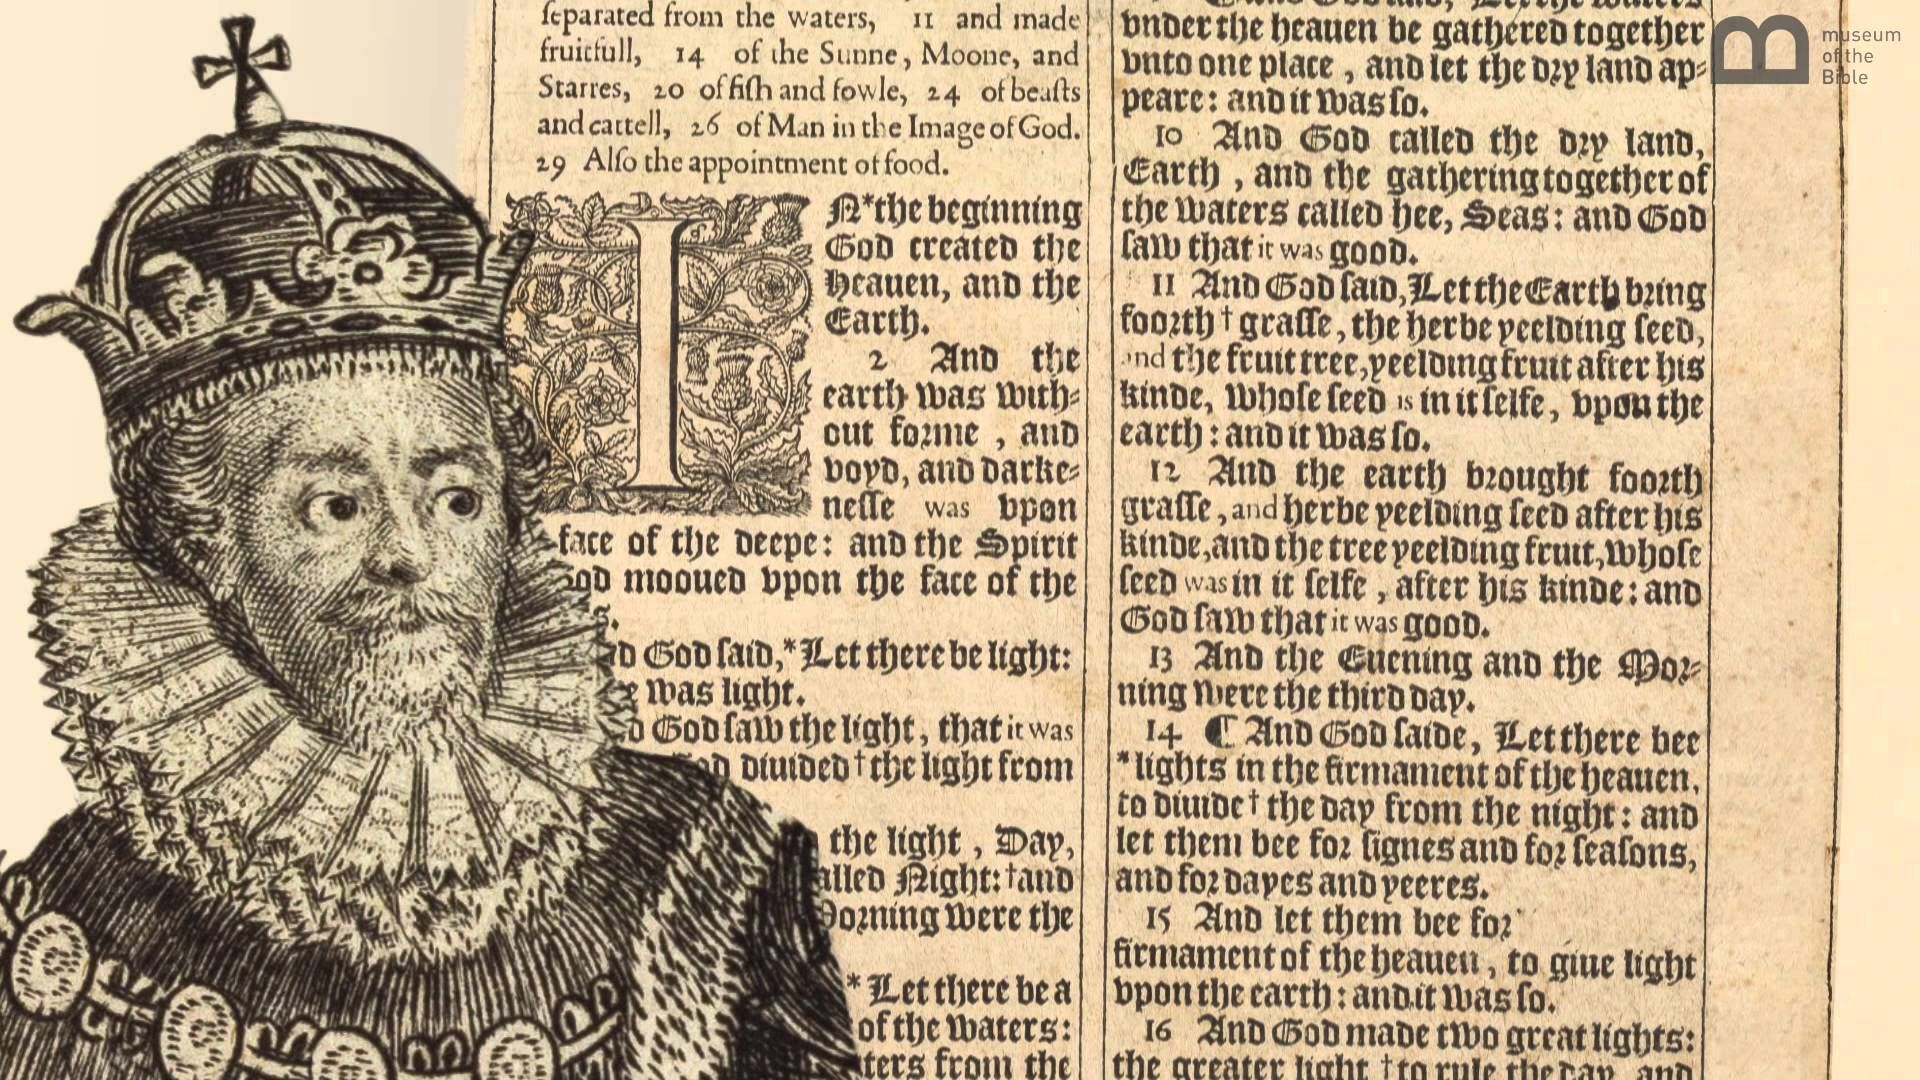 The King James Bible has inspired the lyrics of more pop songs than any other book.